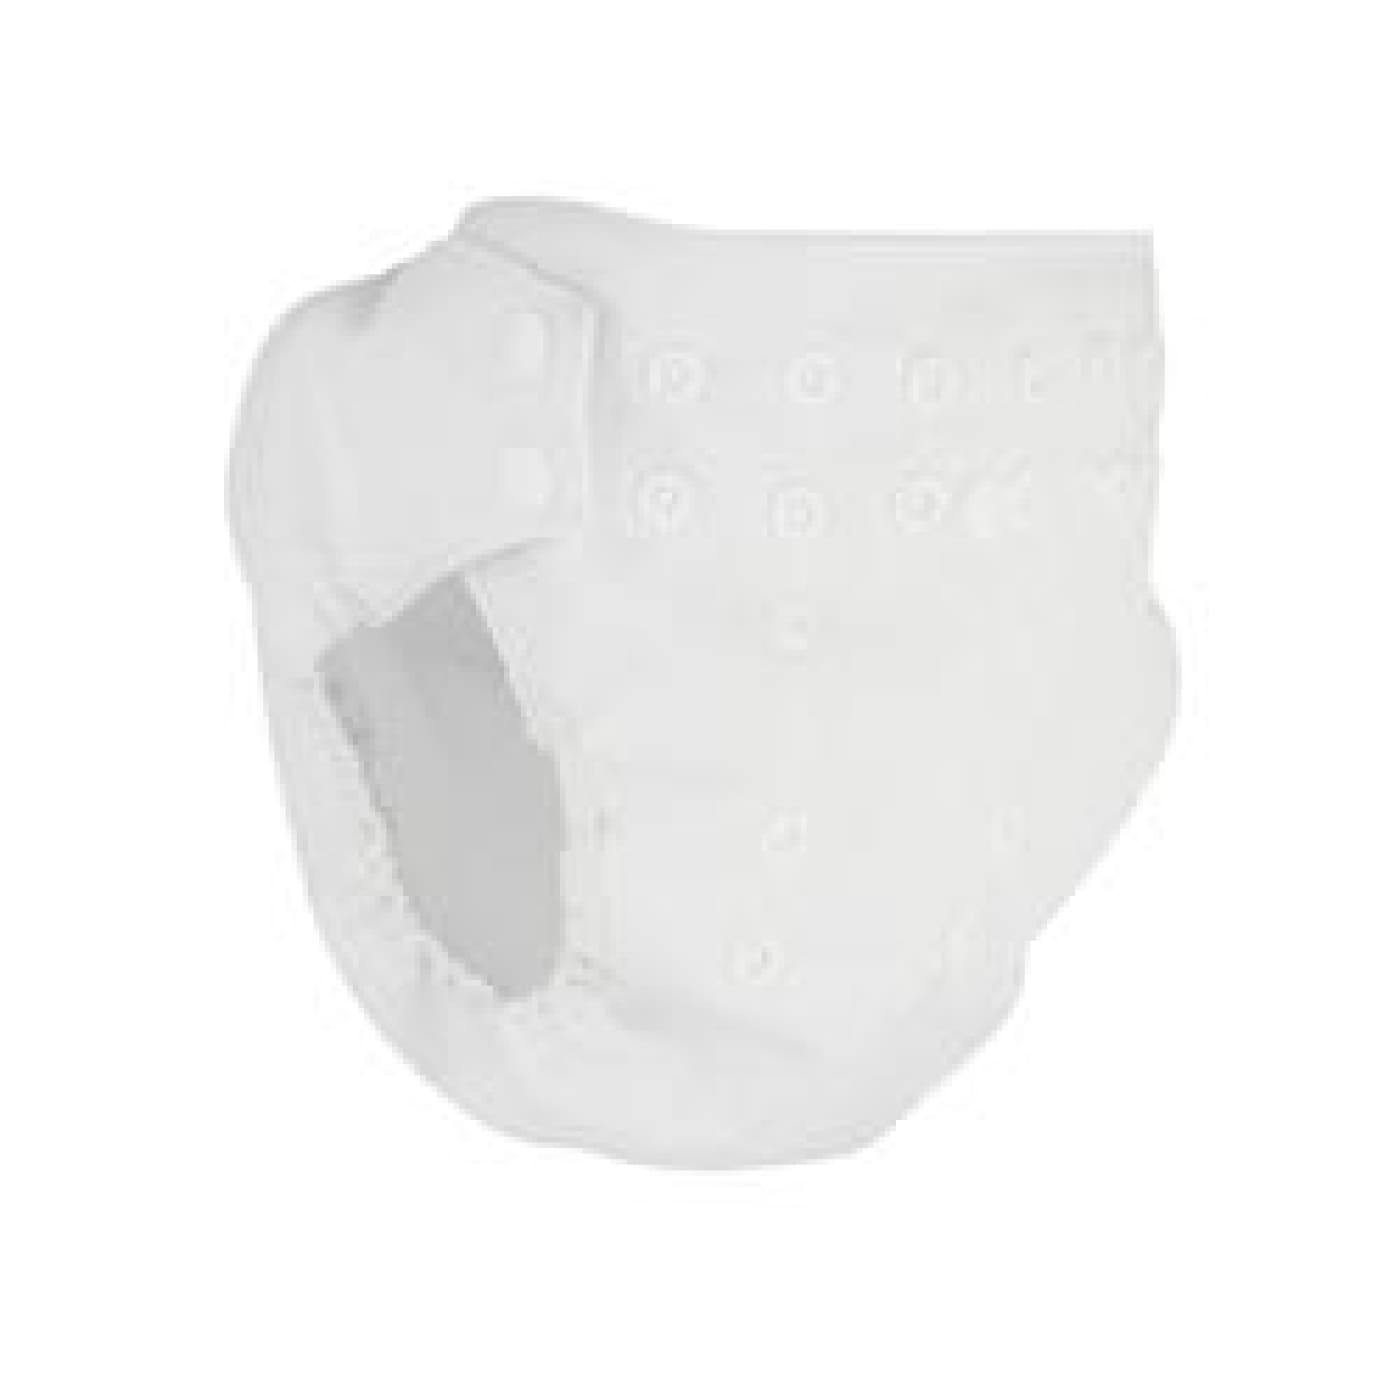 Pea Pods Pilcher Nappy Cover - White - BATHTIME & CHANGING - NAPPIES/WIPES/ACC ECO RANGE